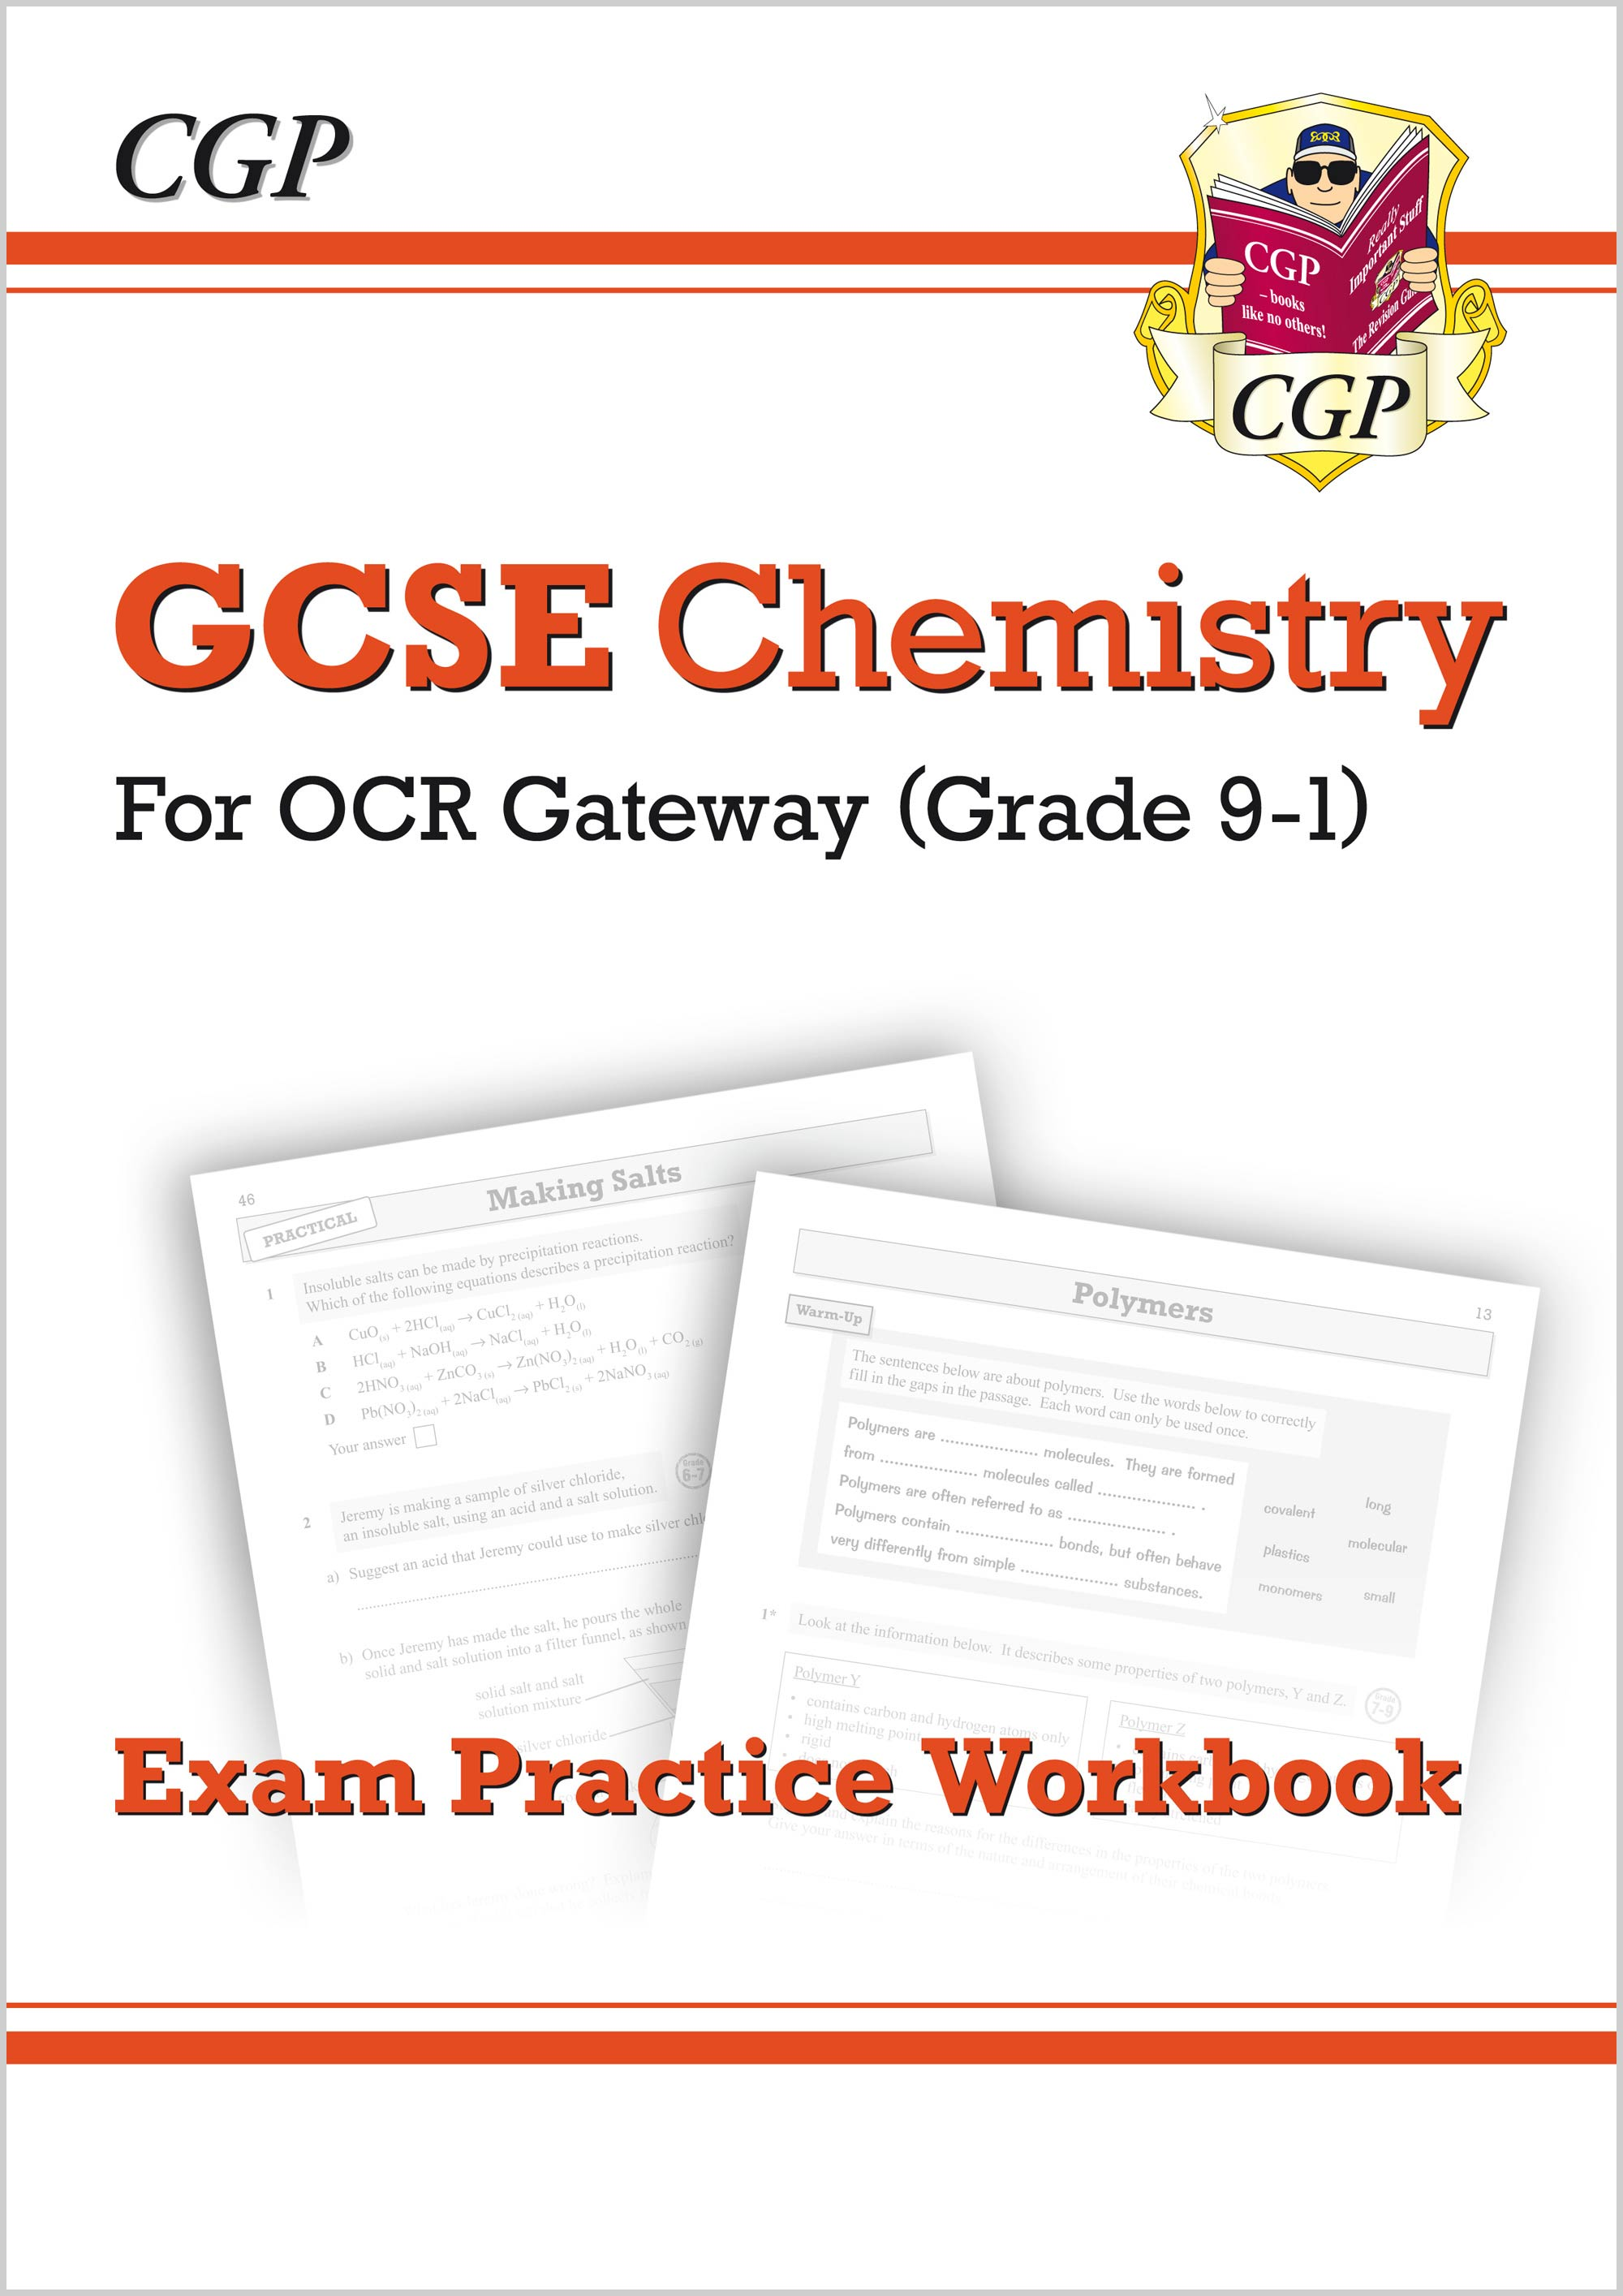 CRQ41 - Grade 9-1 GCSE Chemistry: OCR Gateway Exam Practice Workbook